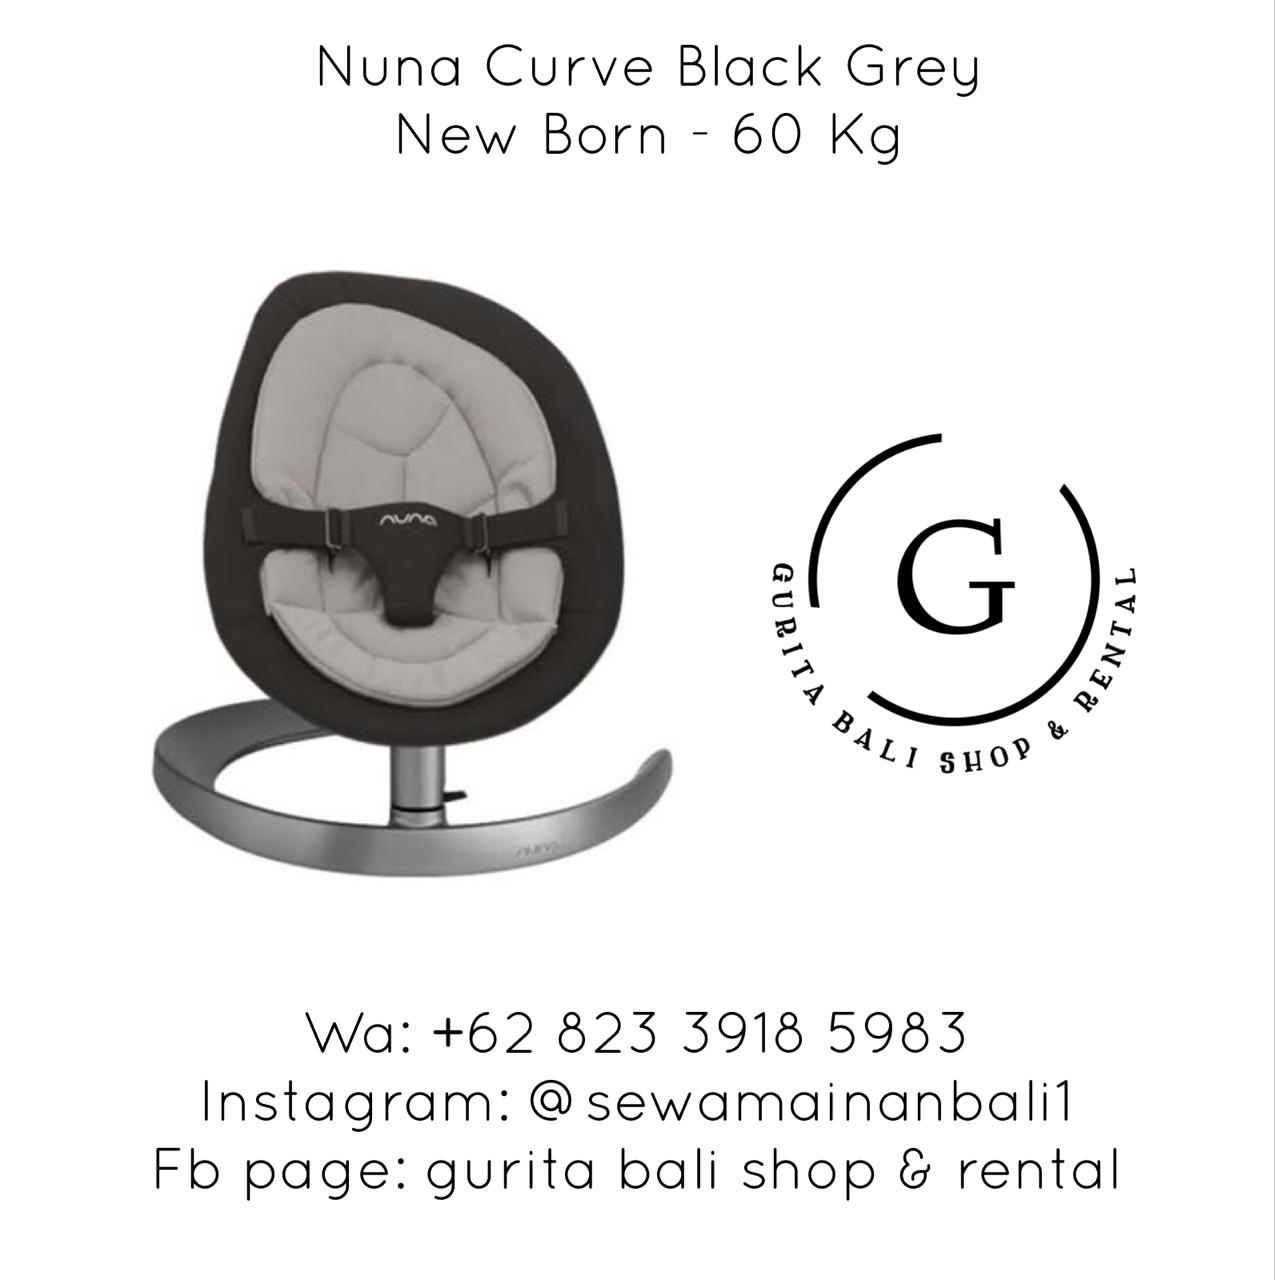 NUNA CURVE BLACK GREY